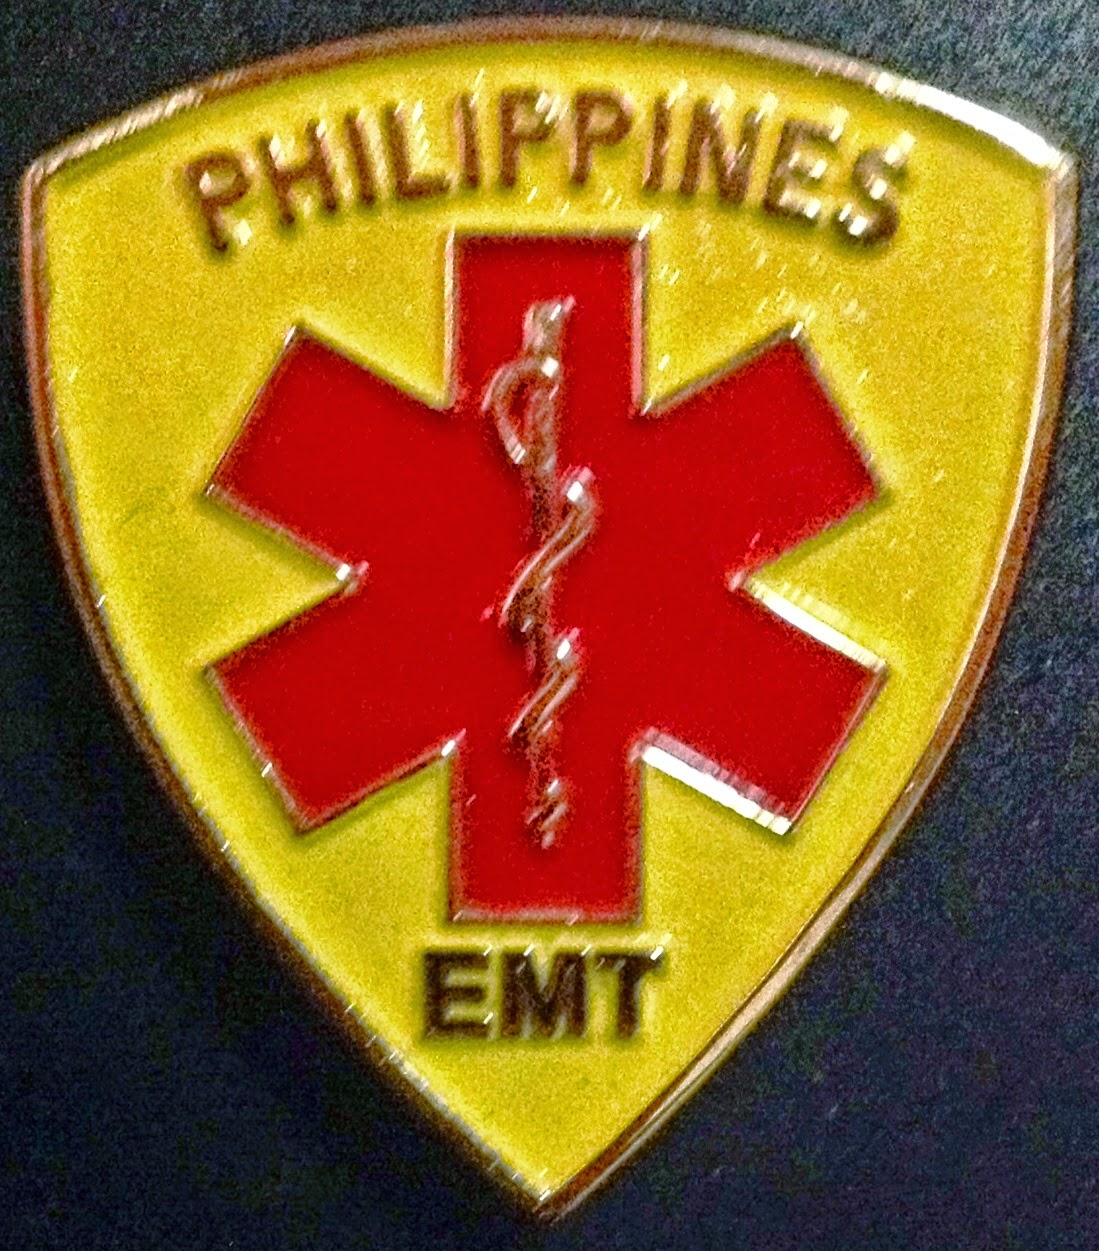 Asias emergency medical services instituteinc aems august 2014 a certified emergency medical technician emt is the minimal level of training required to transport a patient to an acute care facility xflitez Choice Image